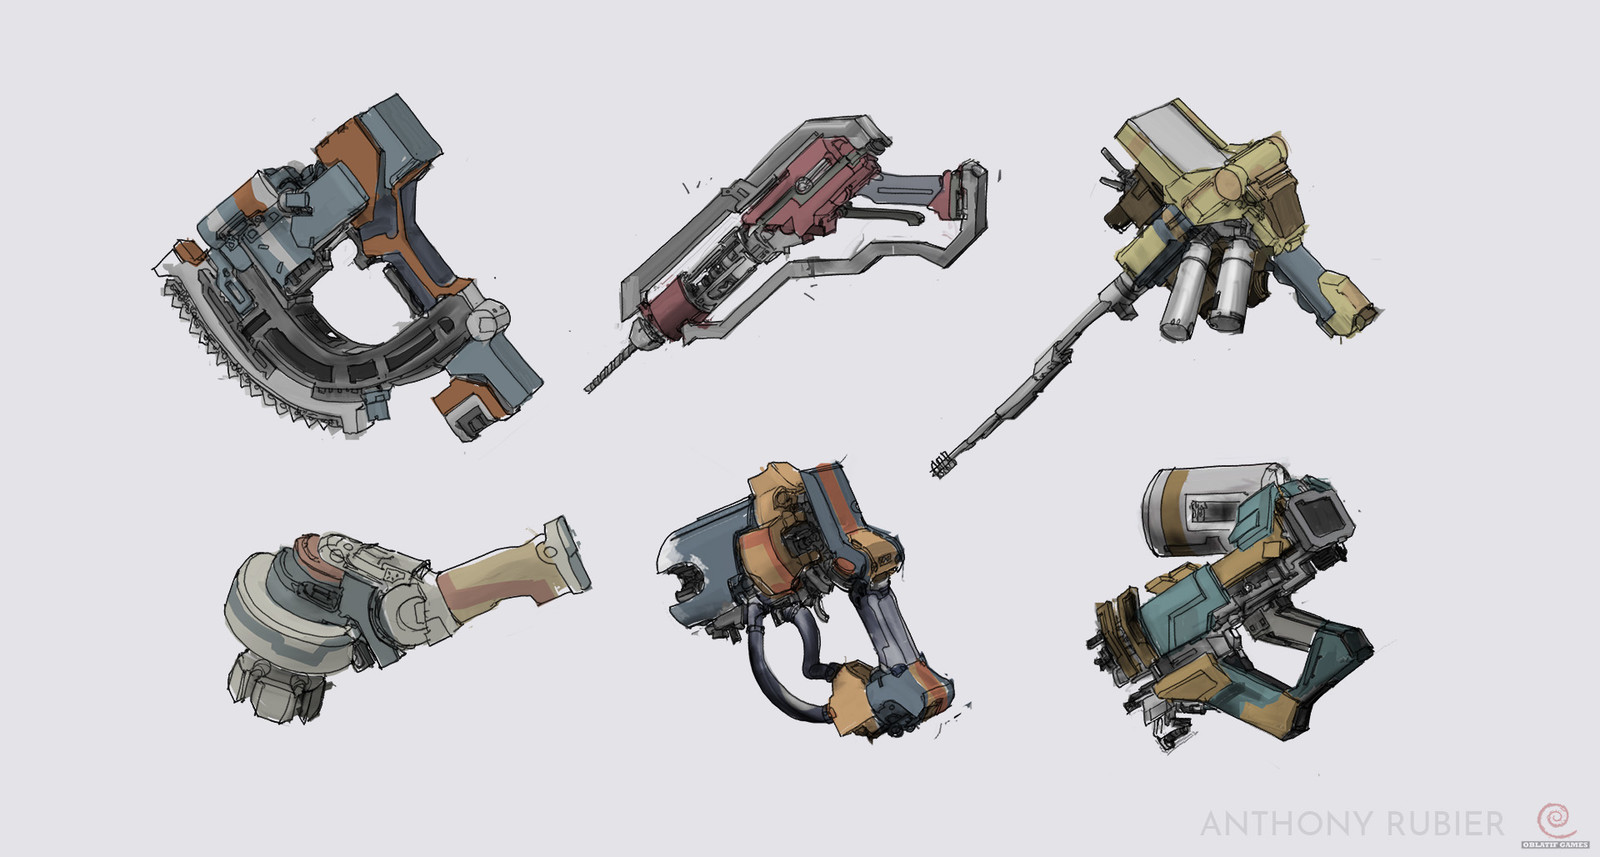 Concepts for tools